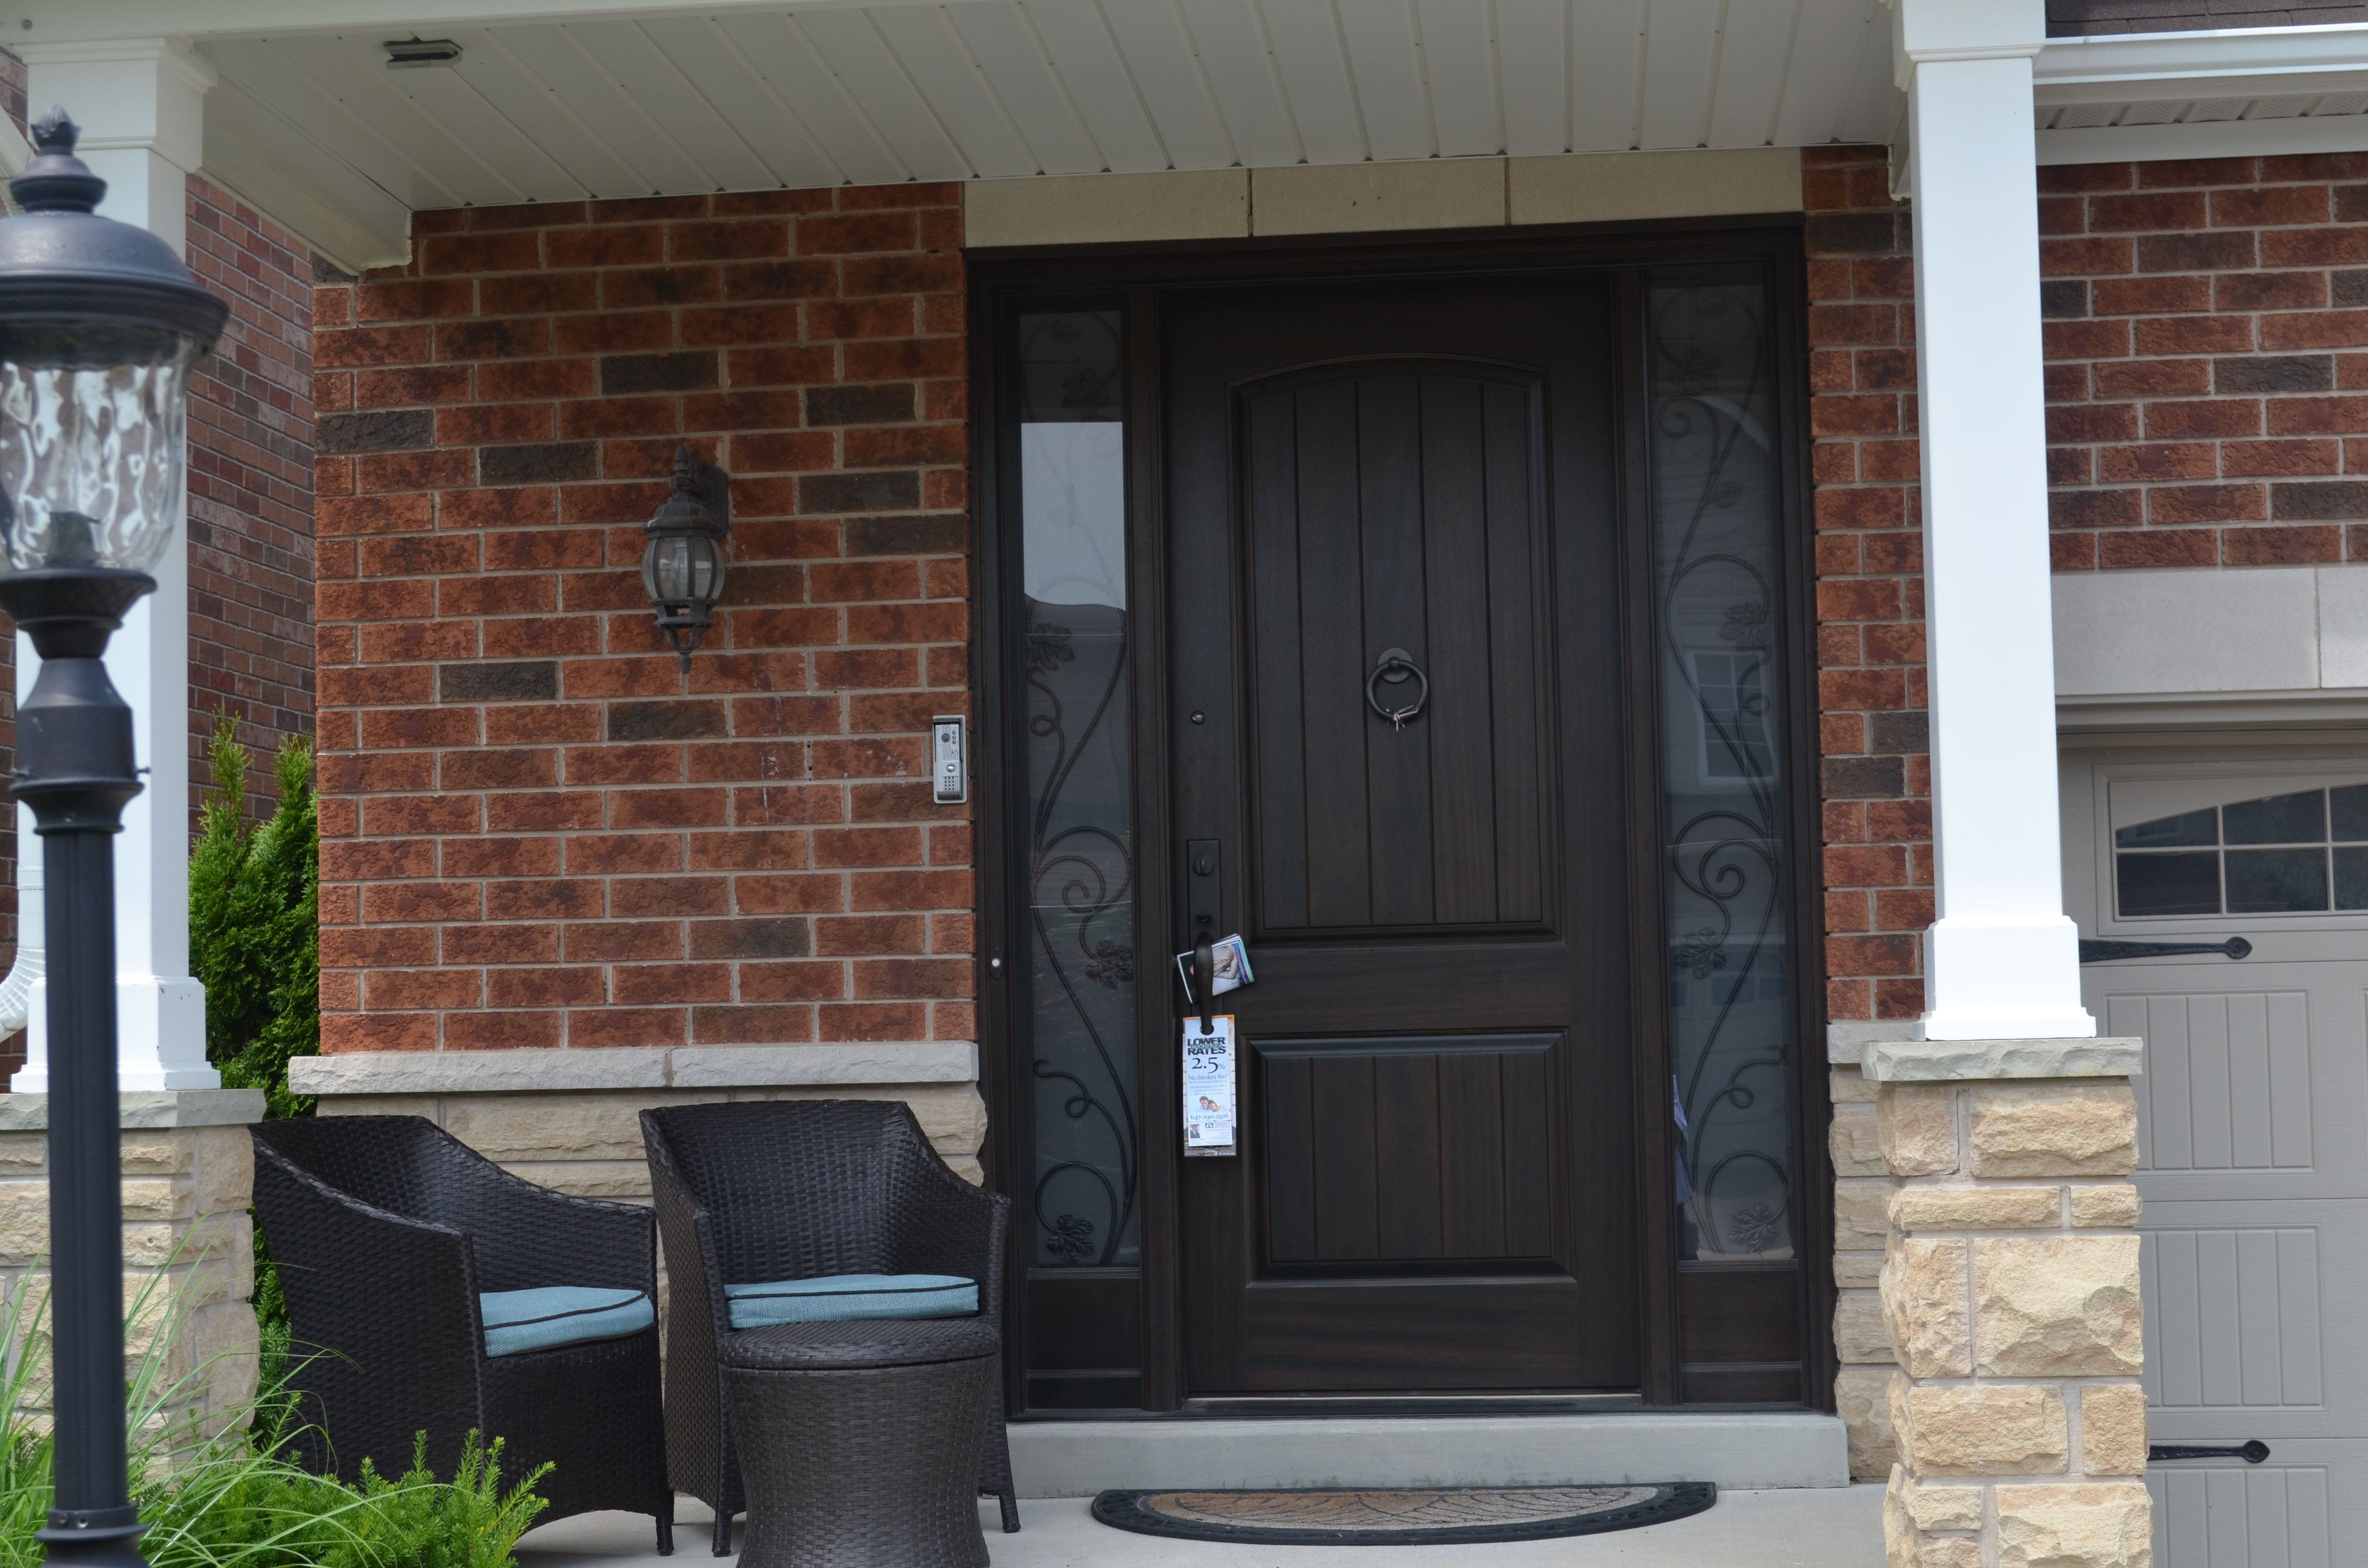 GORGEOUS DOOR BY THE WINDOW & DOOR SPECIALIST LTD.  604 EDWARD AVE UNIT 3  RICHMOND HILL, ON.  CALL US TODAY FOR YOUR FREE  IN HOME ESTIMATE 905.770.3719